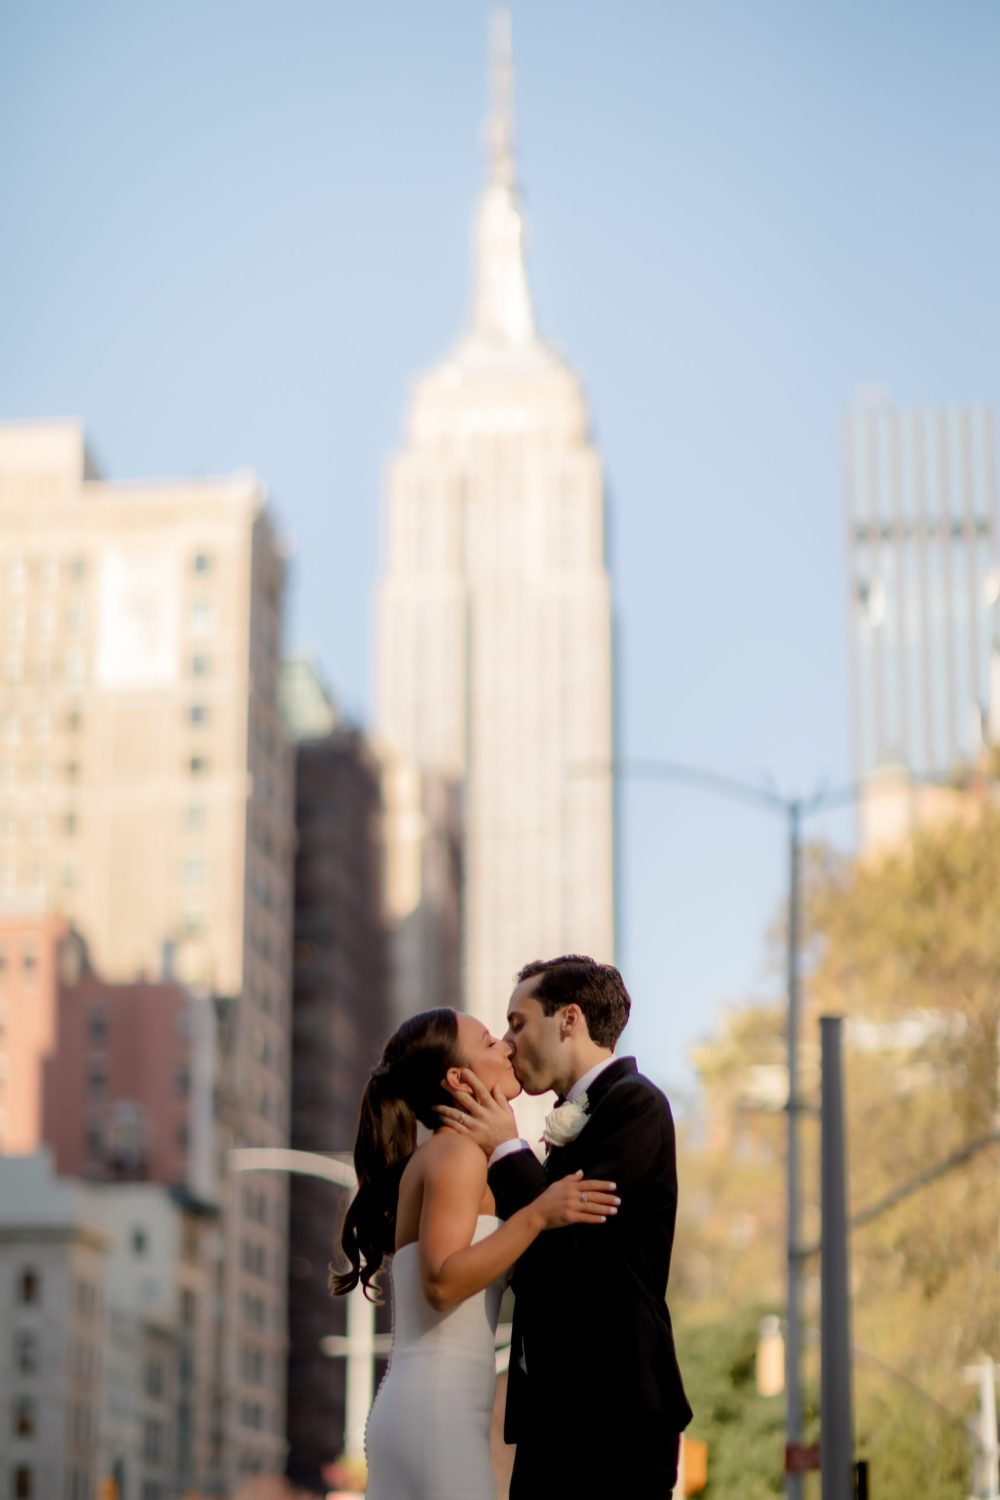 Wedding in front of the Empire State Building